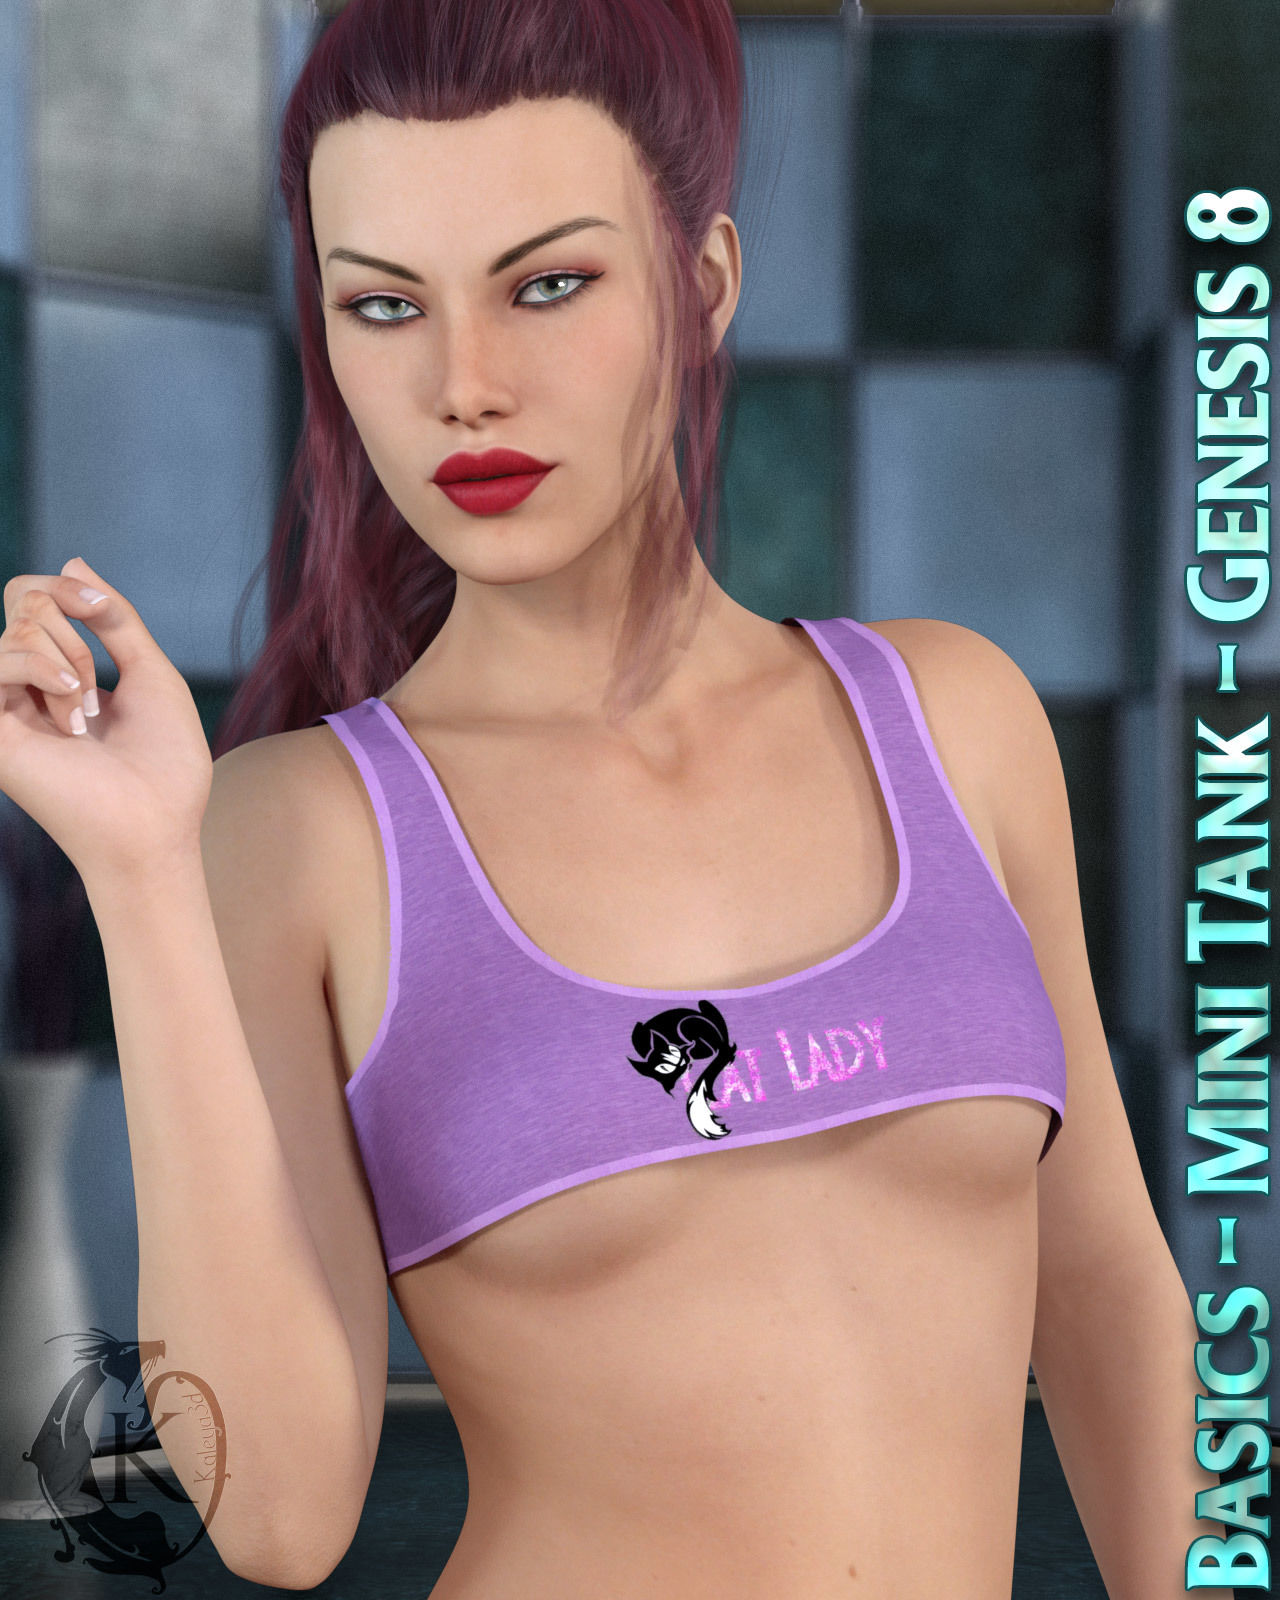 Basics - Mini Tank Top - Genesis 8